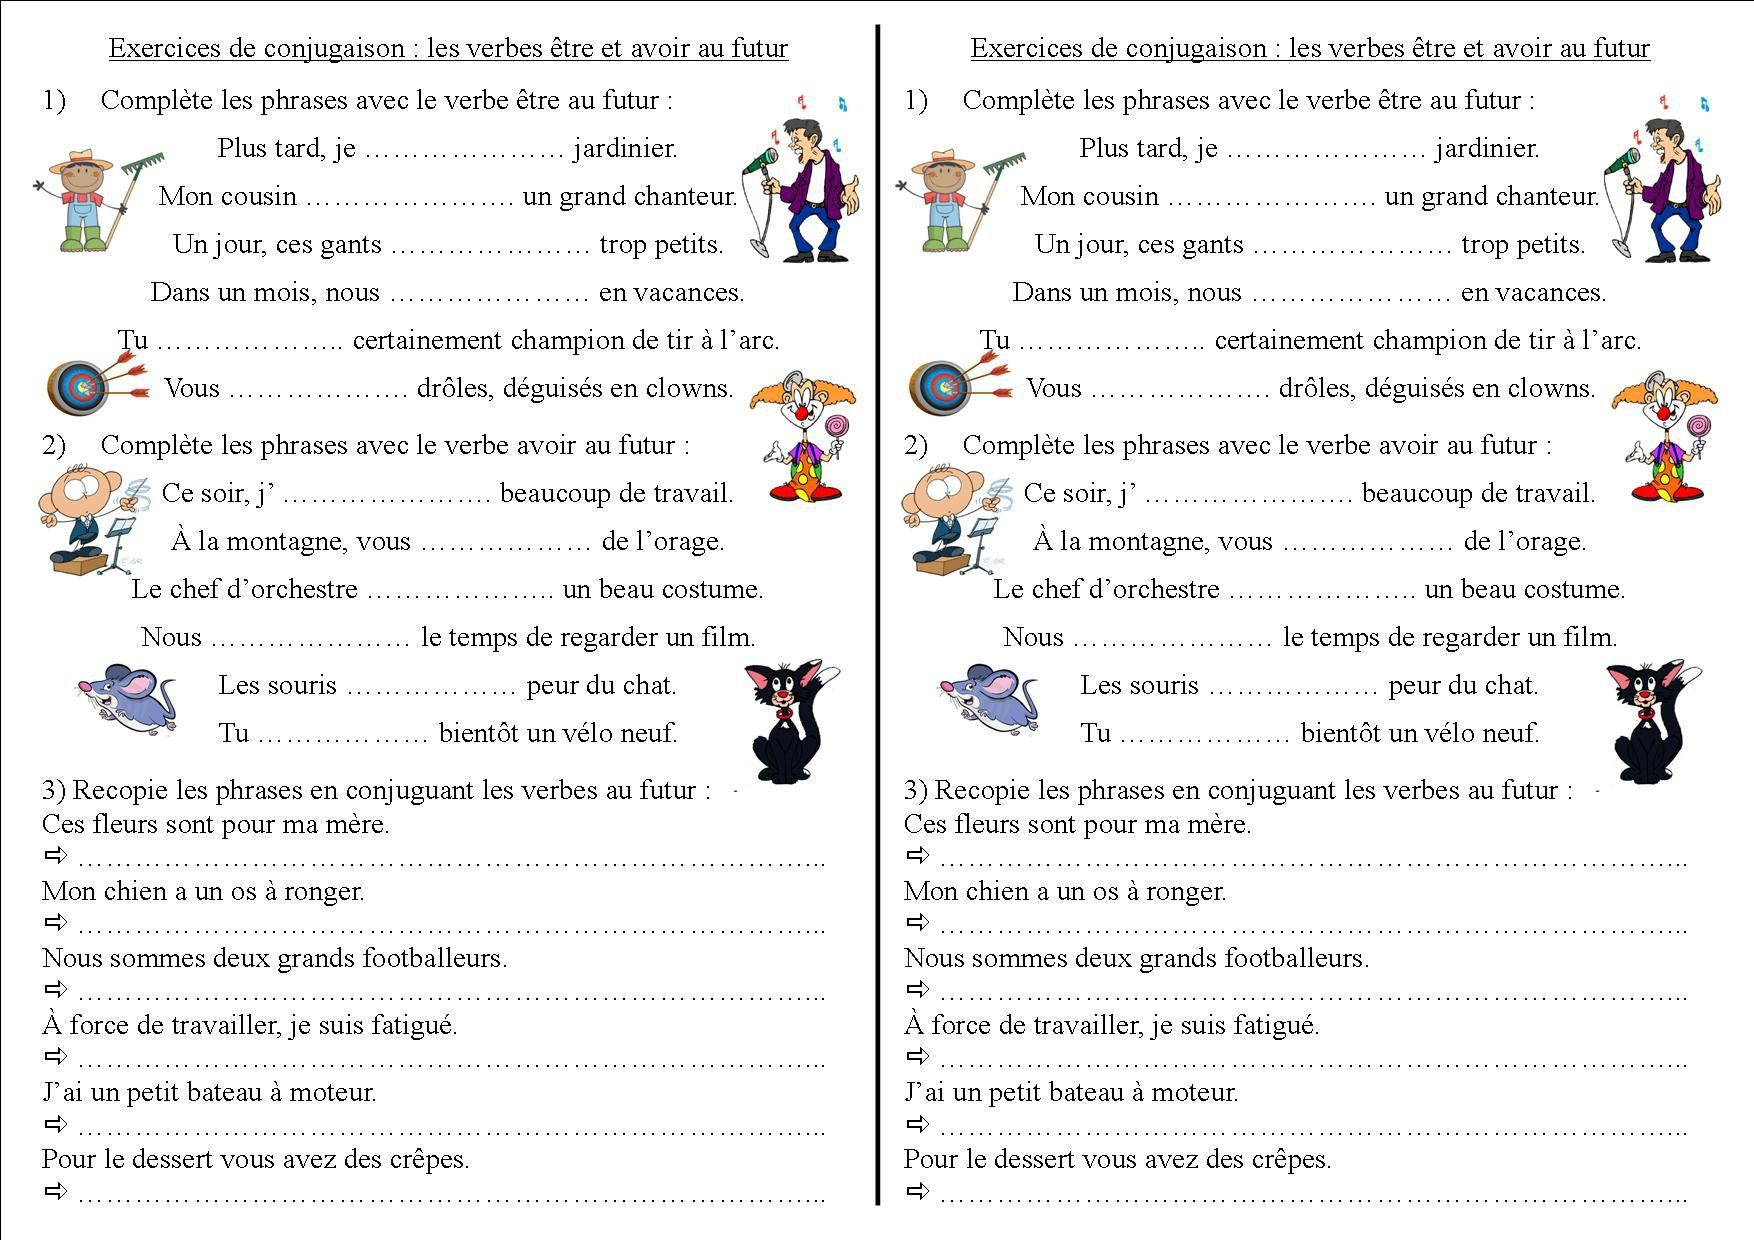 Le Verbe Etre Worksheets Printable Worksheets And Activities For Teachers Parents Tutors And Homeschool Families